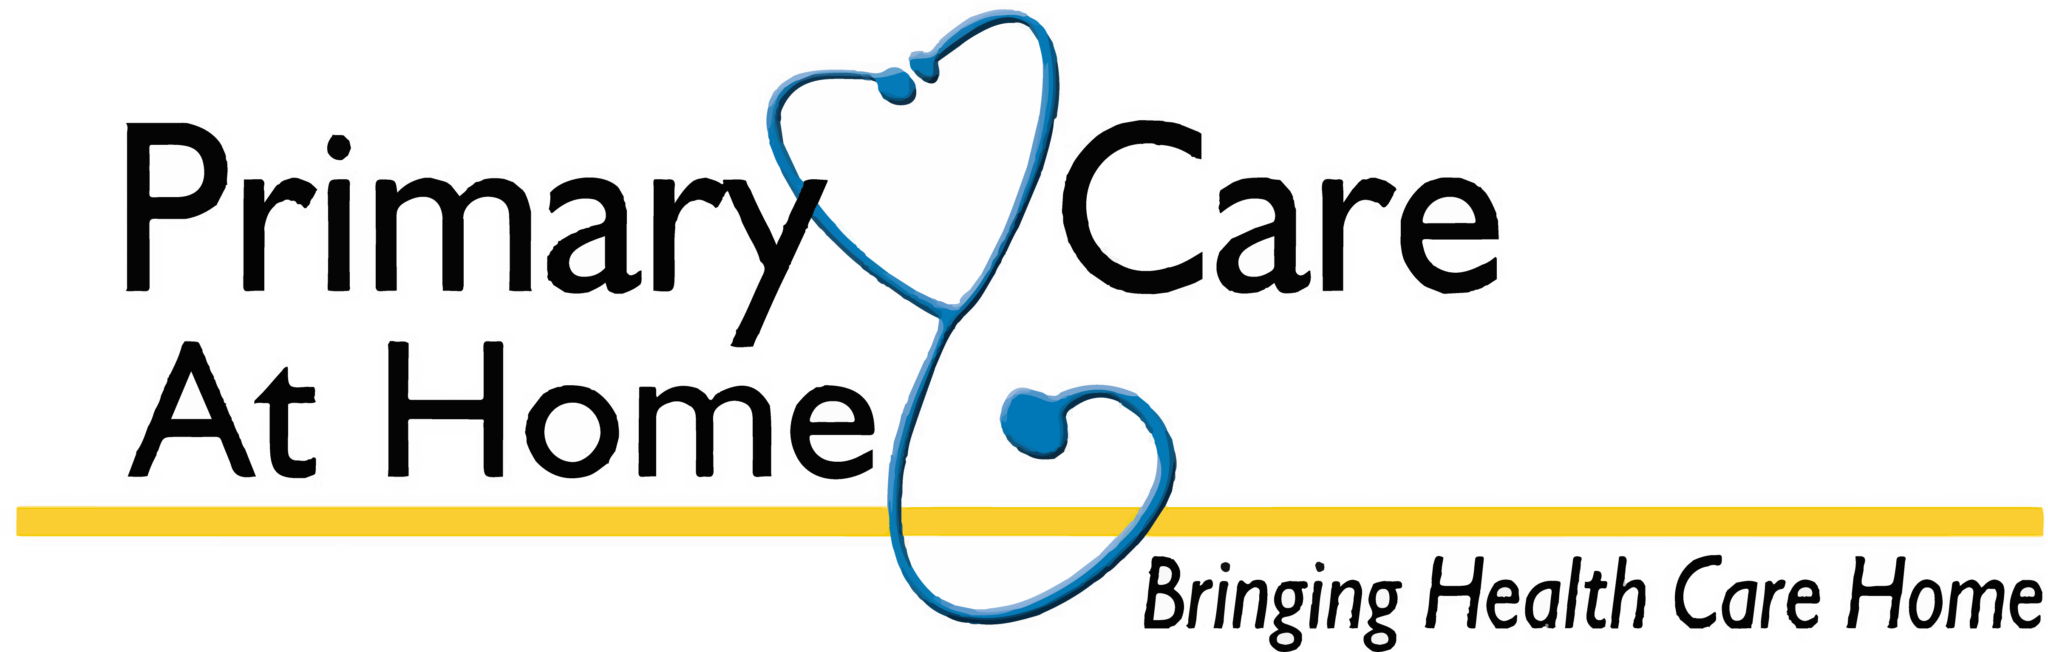 Primary Care At Home